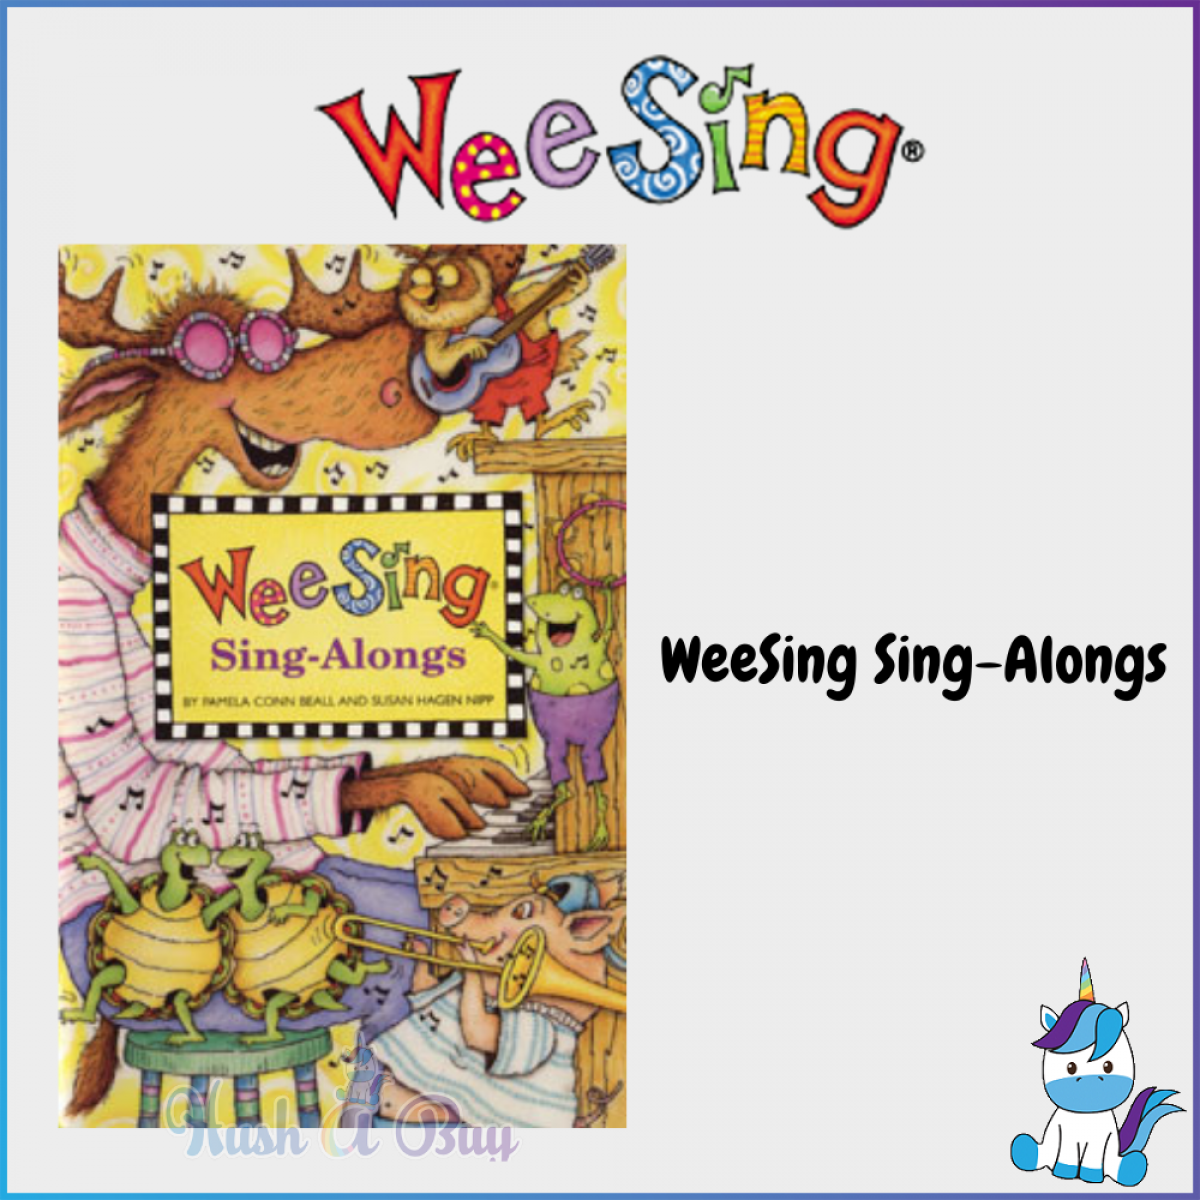 WeeSing Children Musical CD with Illustrated Book with Complete Lyrics - And Move / Sing Along / The Best of Weesing [Age 0+]